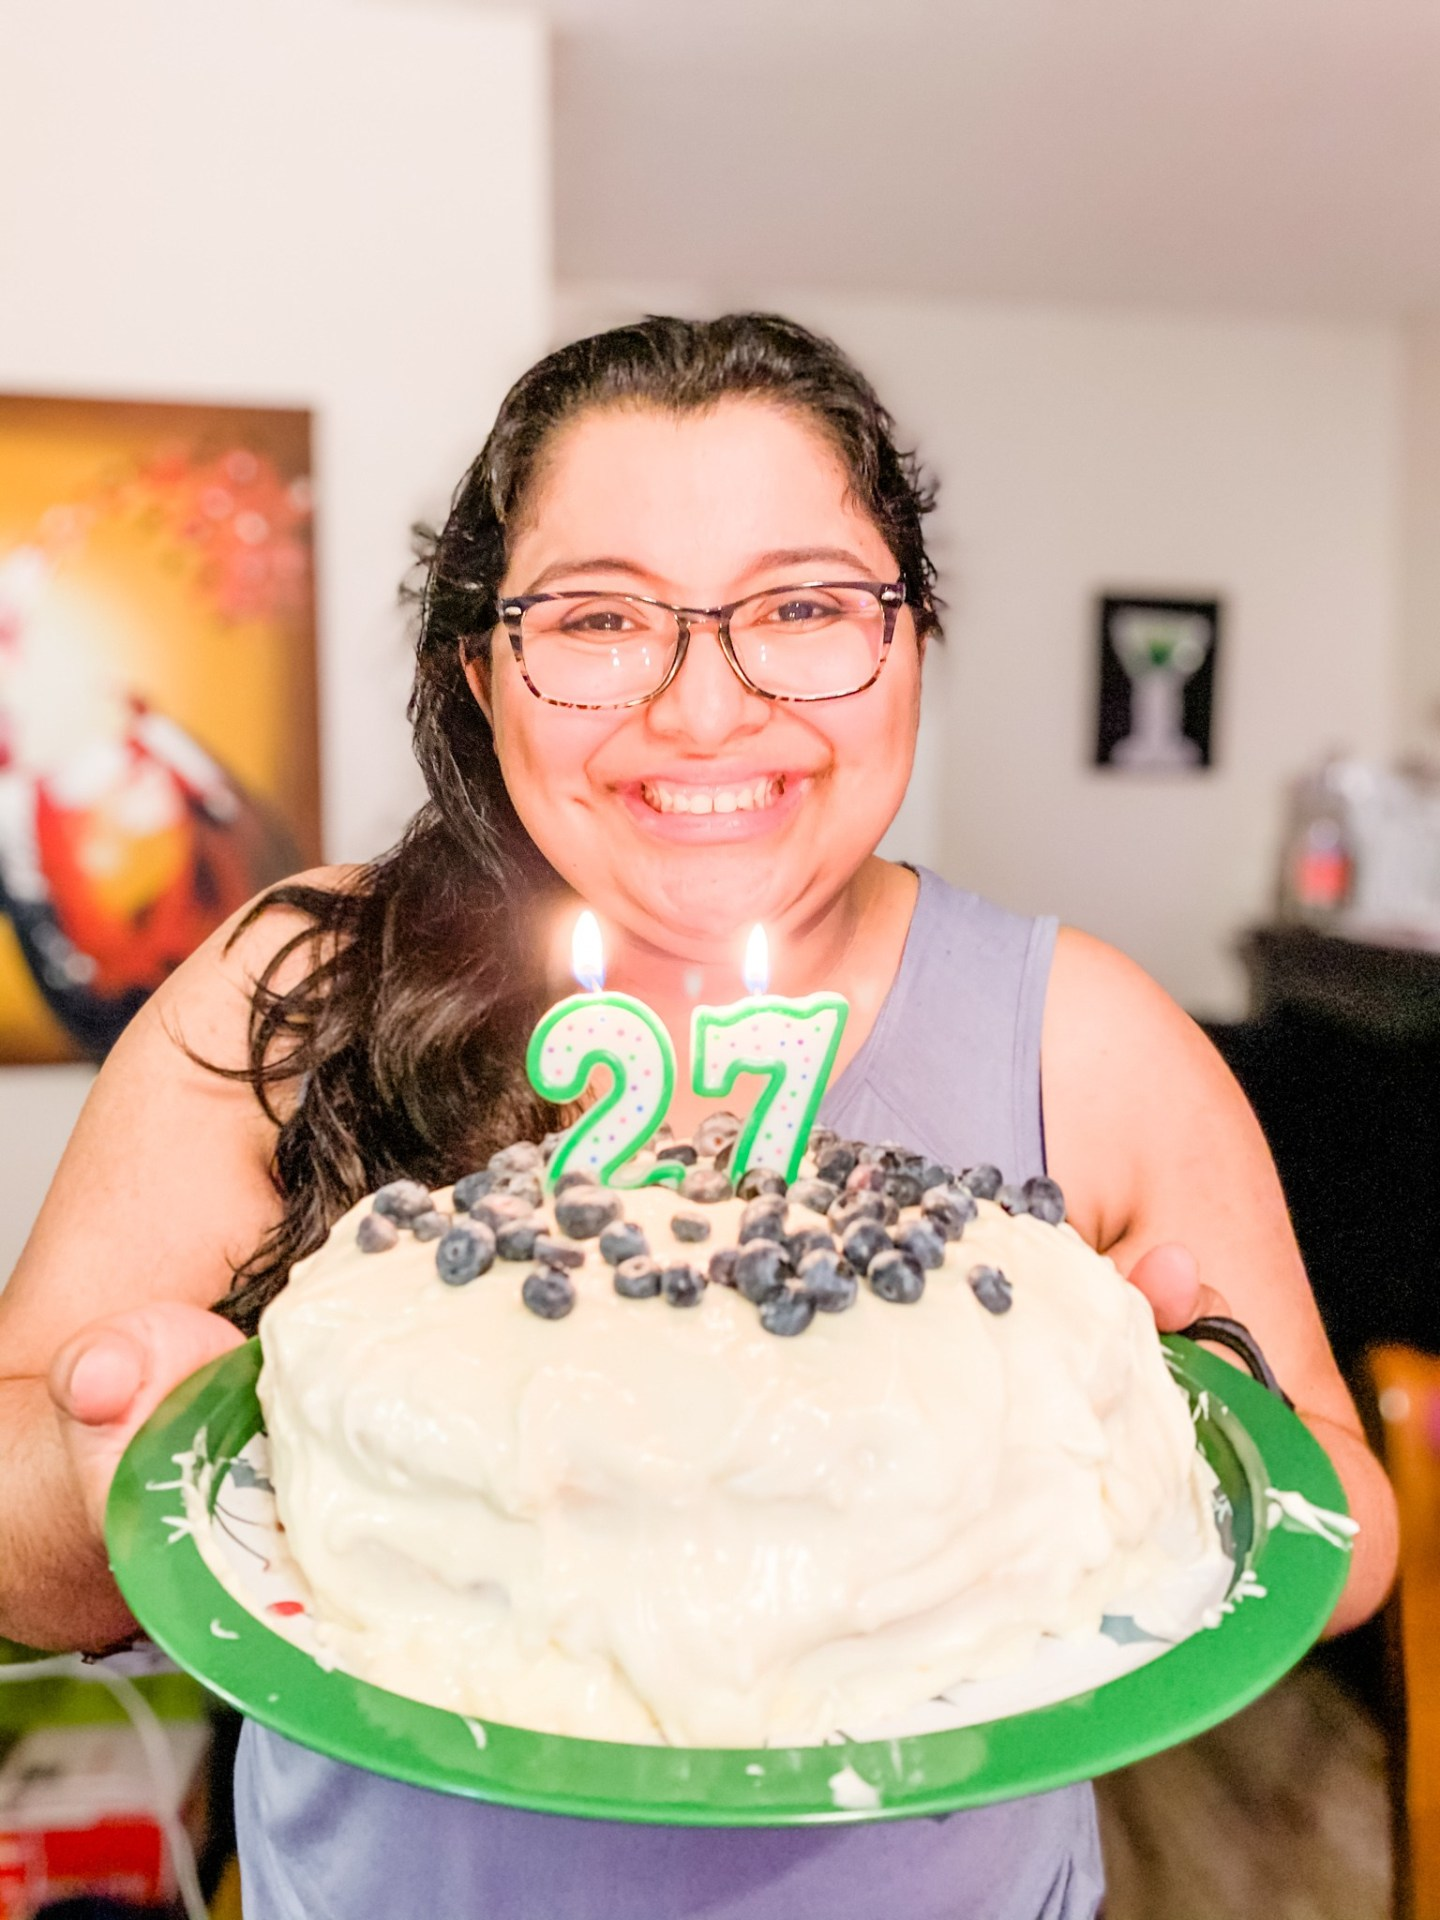 The 27th Birthday Chronicles: Young, Wild, and Social Distancing